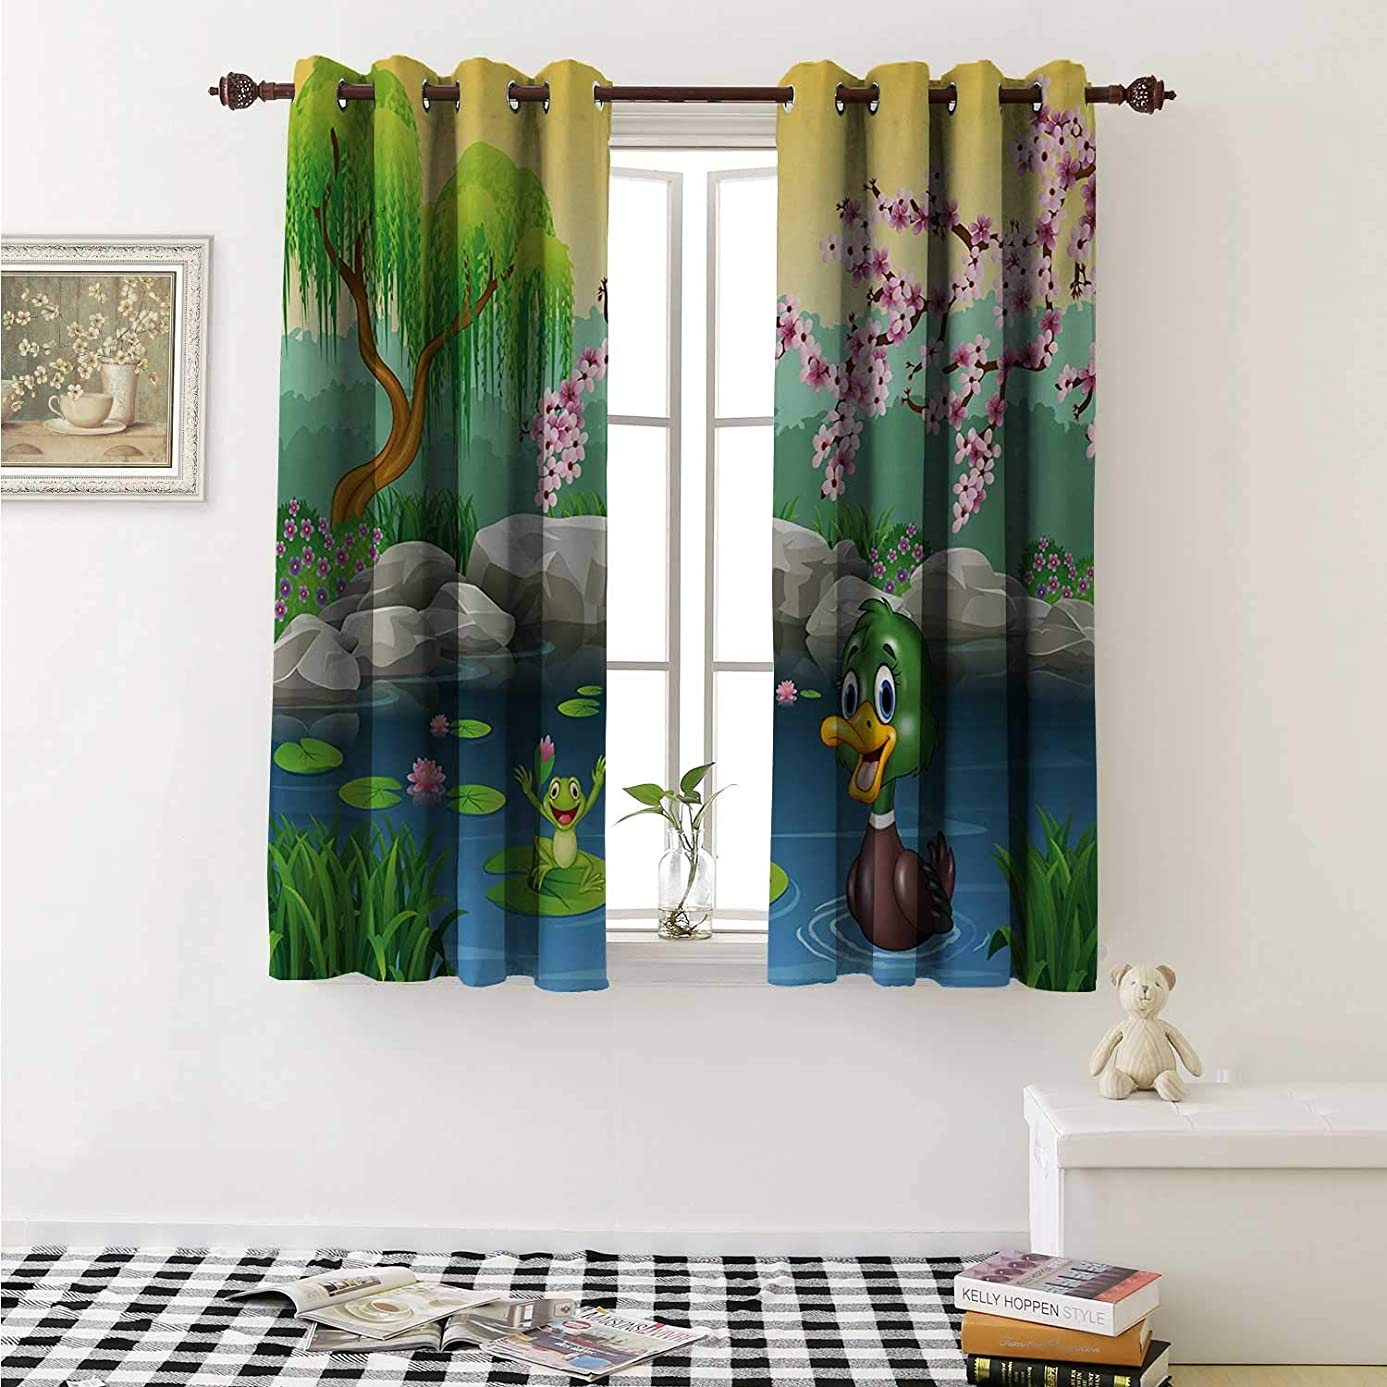 Cartoon Blackout Draperies for Bedroom Vector Cute Ducks Frogs in a Lake Pond Trees Image Kids Nursery Design Artwork Curtains Kitchen Valance W72 x L63 Inch Multicolor